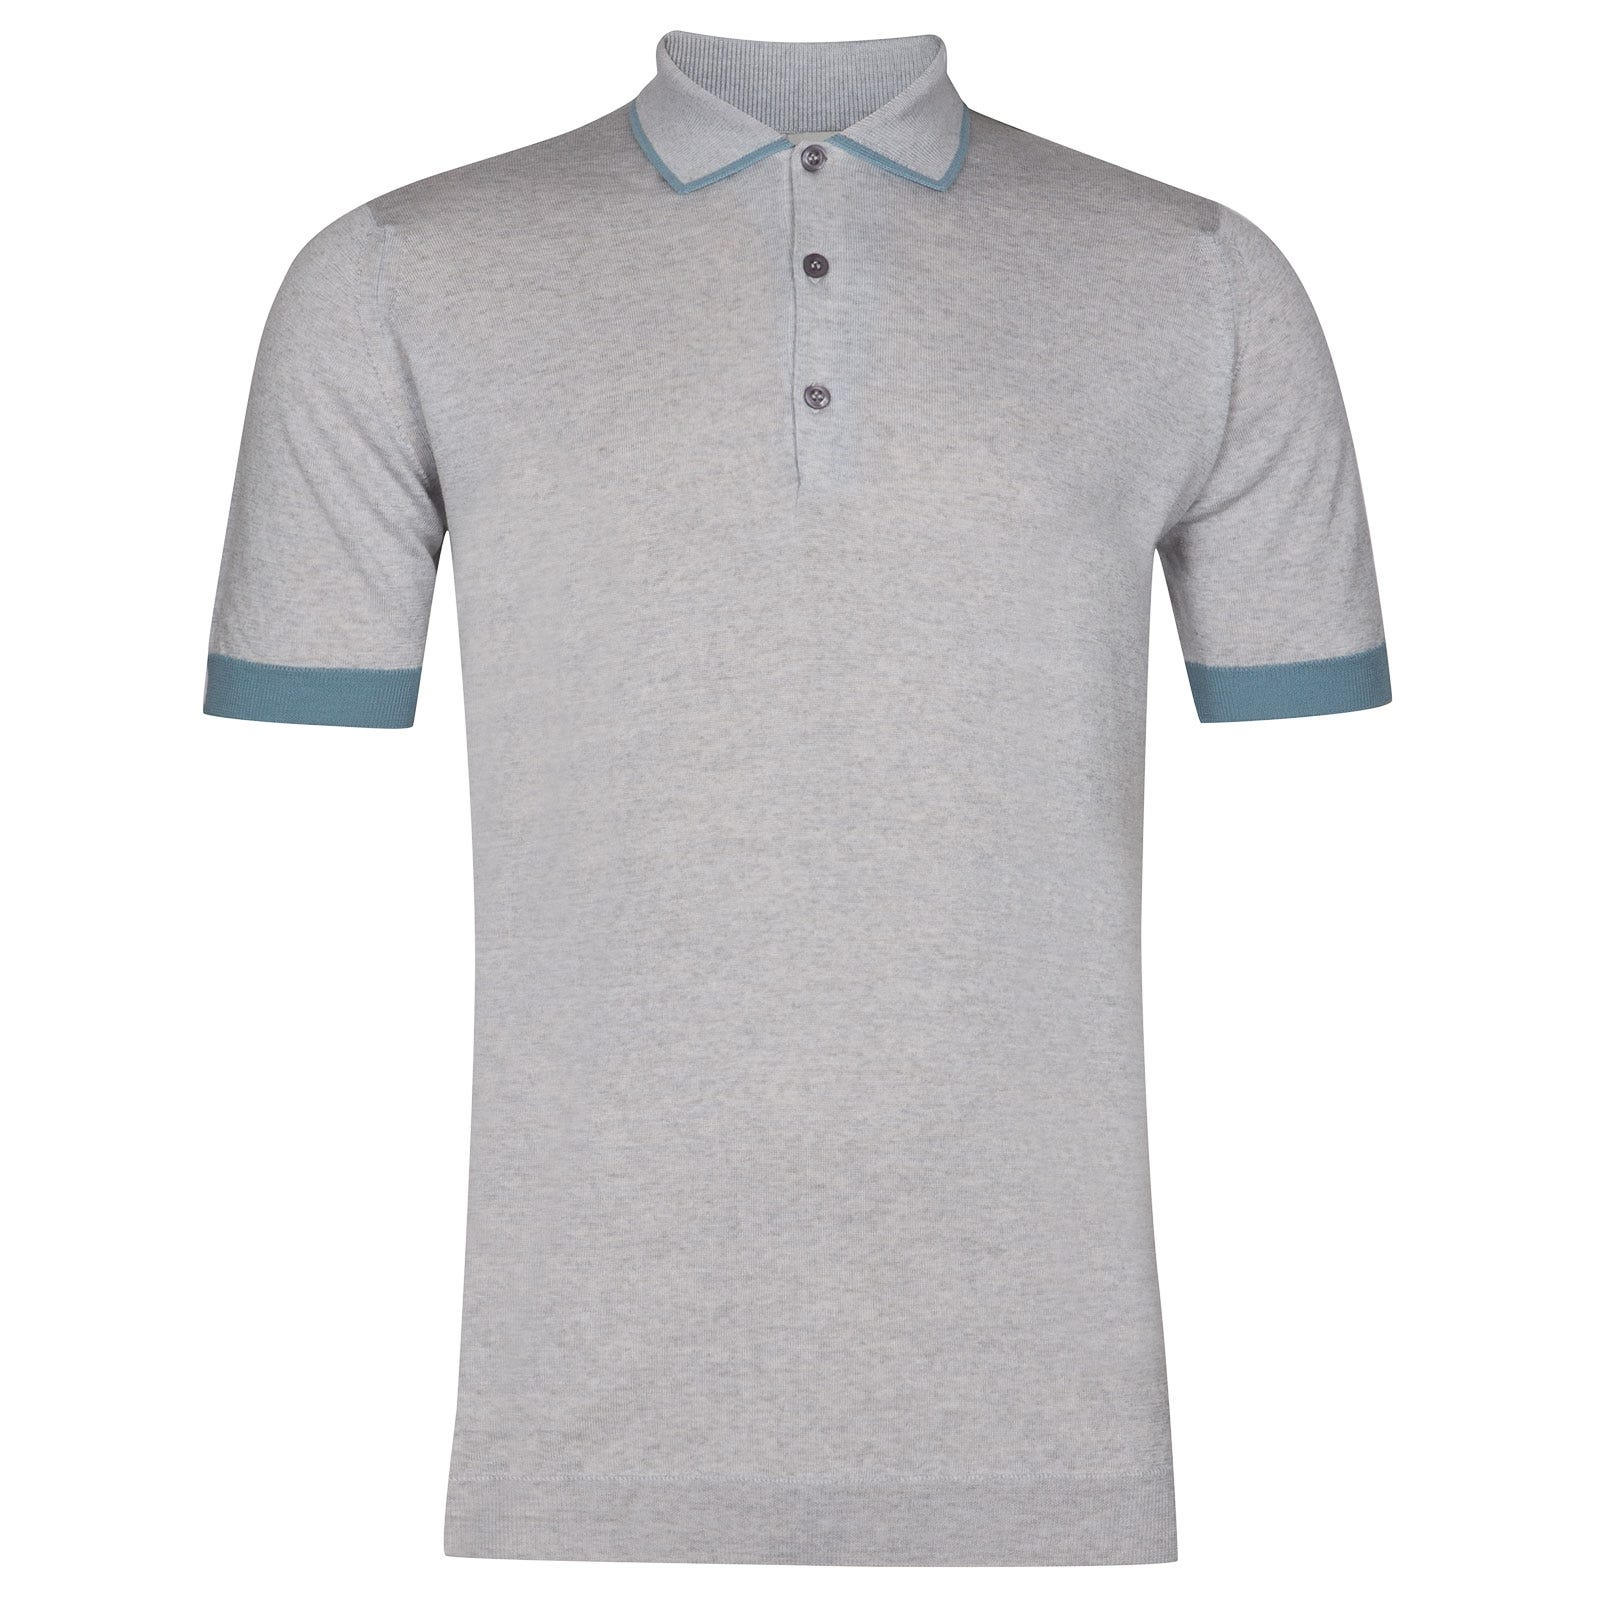 John Smedley nailsea Merino Wool Shirt in Bardot Grey/Summit Blue-L